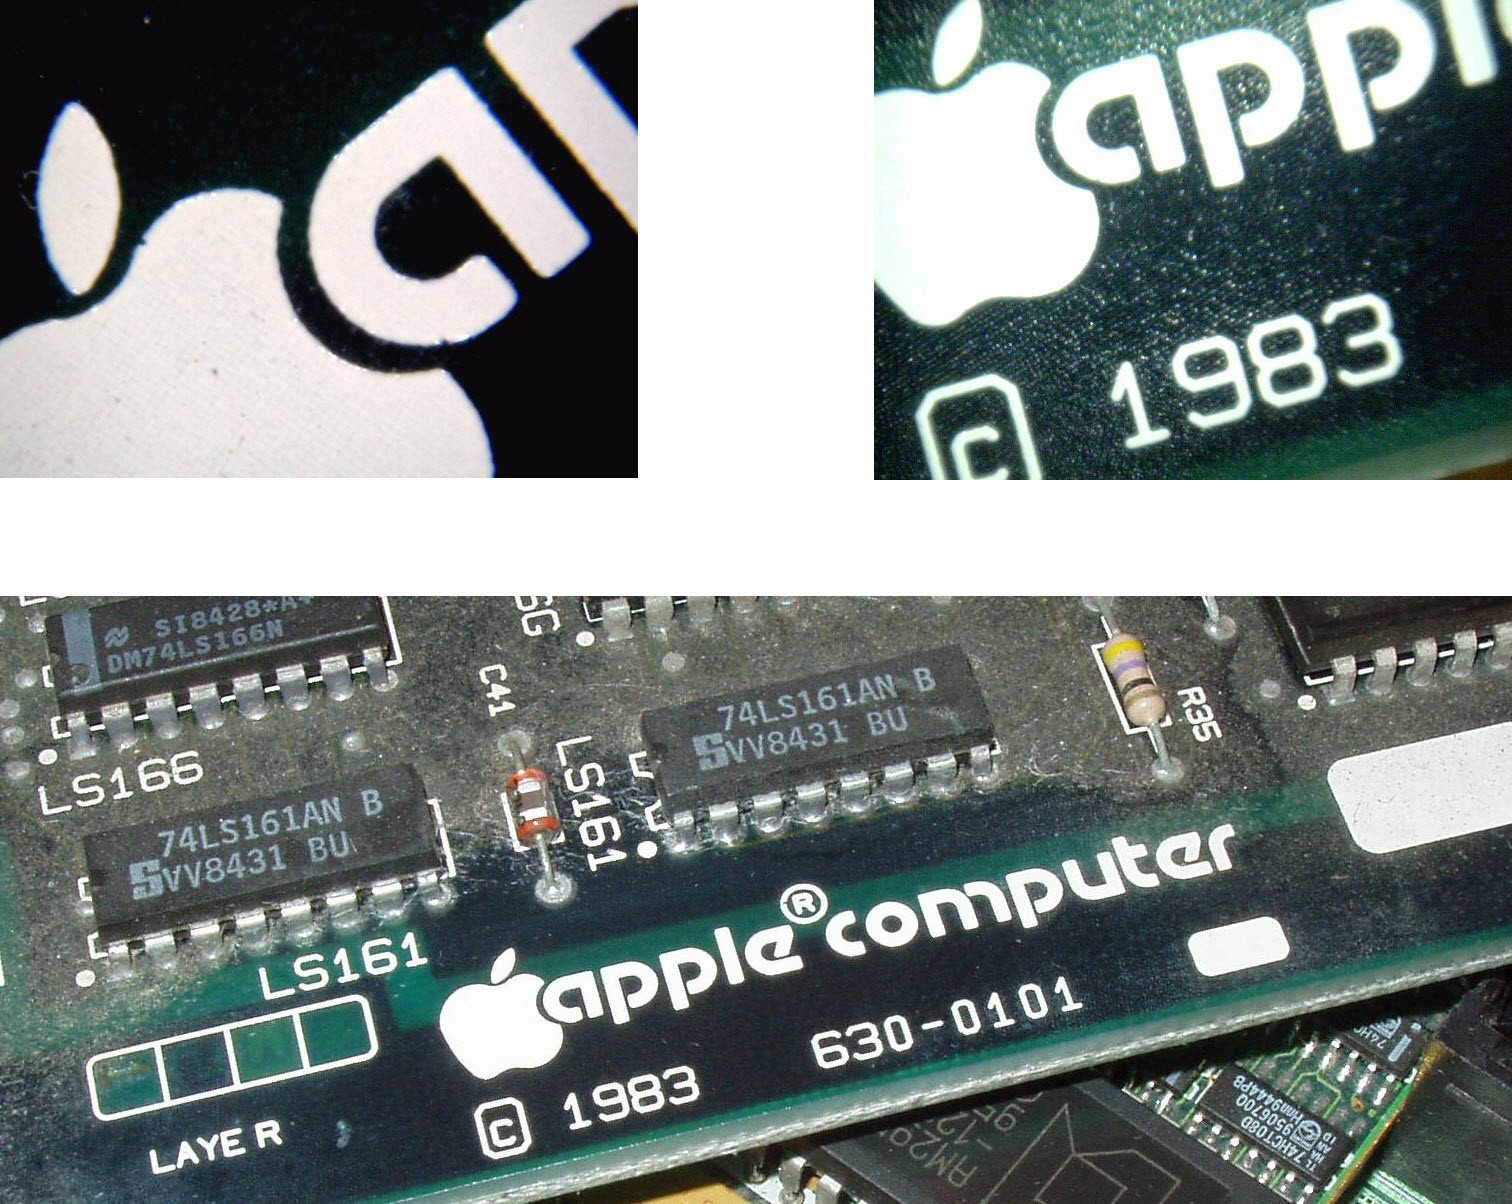 Apples Pcbs Layerprintedcircuitboardpcbproductionjpg The High Resolution Silkscreen Printing On Board Would Have Been State Of Art For Pcb Production In 1983 Many Apple Collectors And Enthusiasts